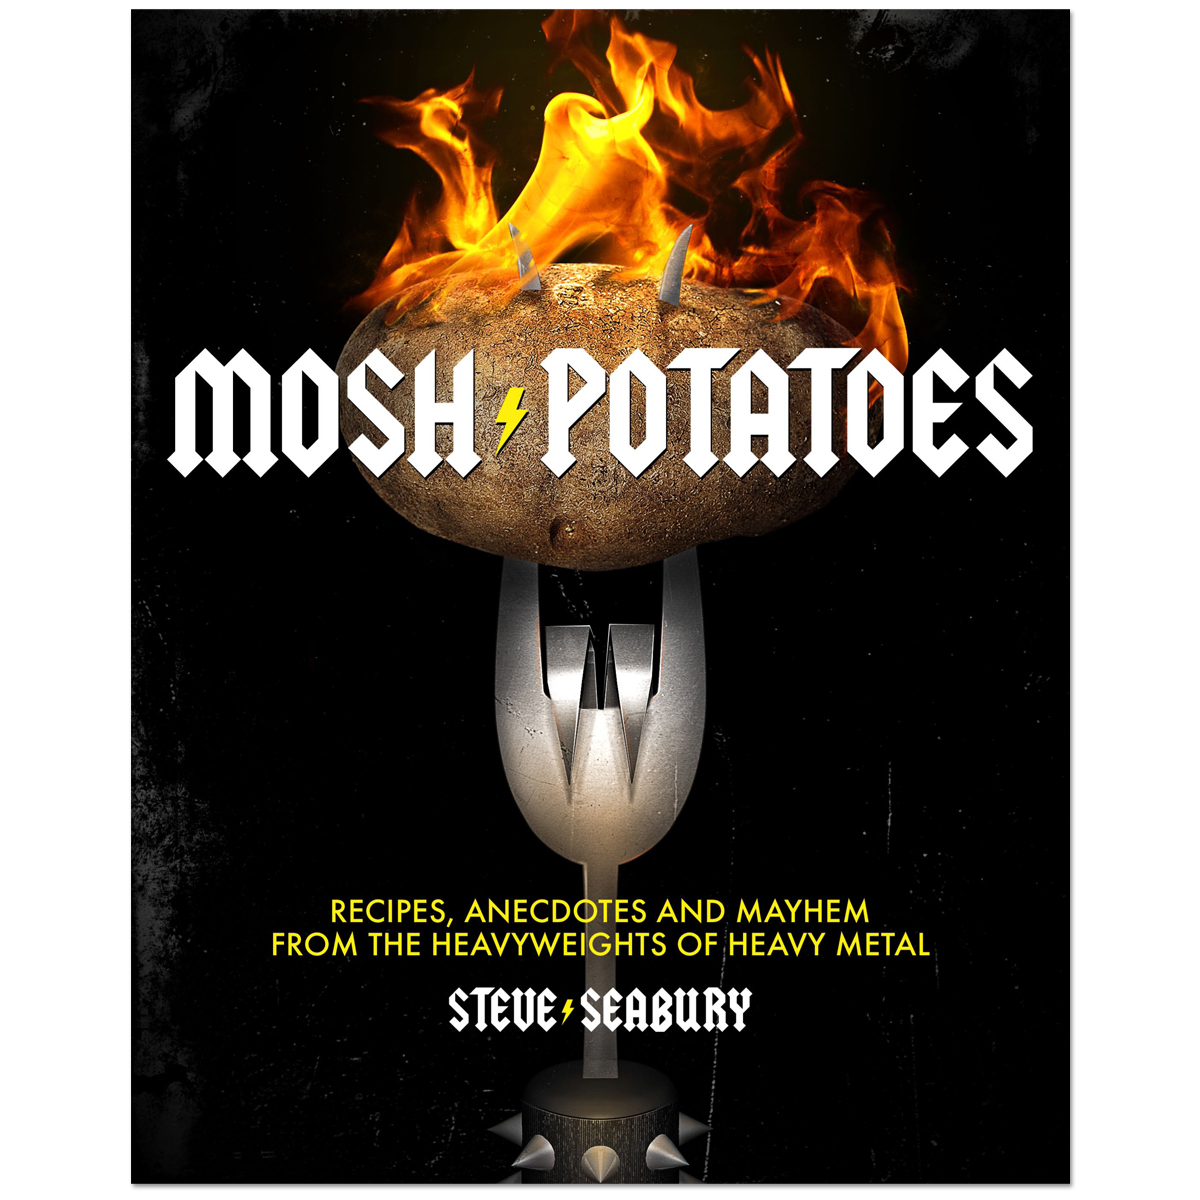 Mayhem Mosh Potatoes: Recipes, Anecdotes, and Mayhem from the Heavyweights of Heavy Metal [Paperback] Book